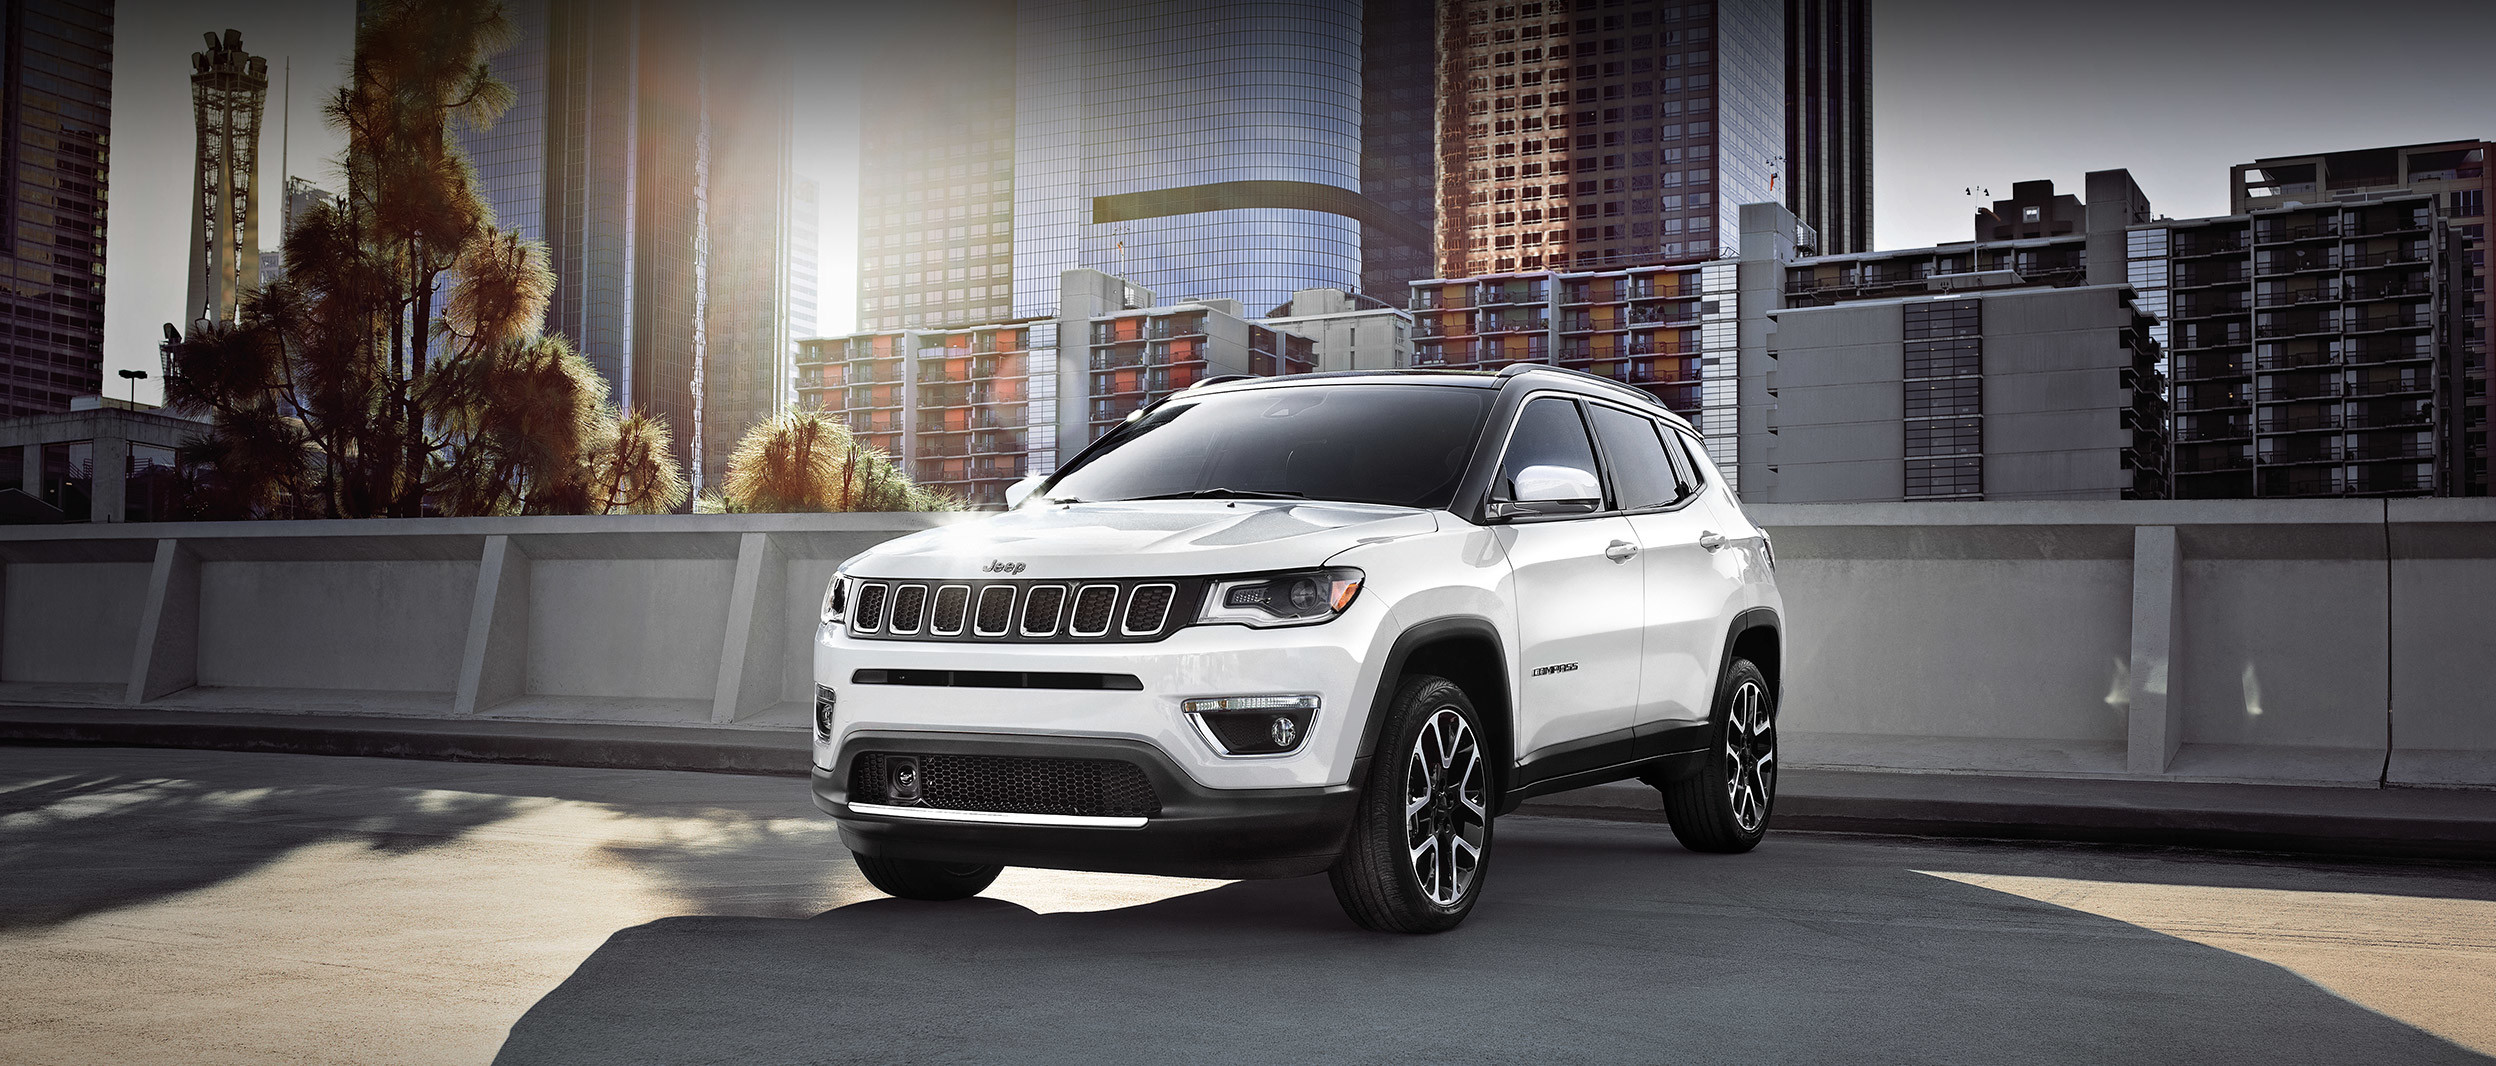 2019 Jeep Compass silver driving